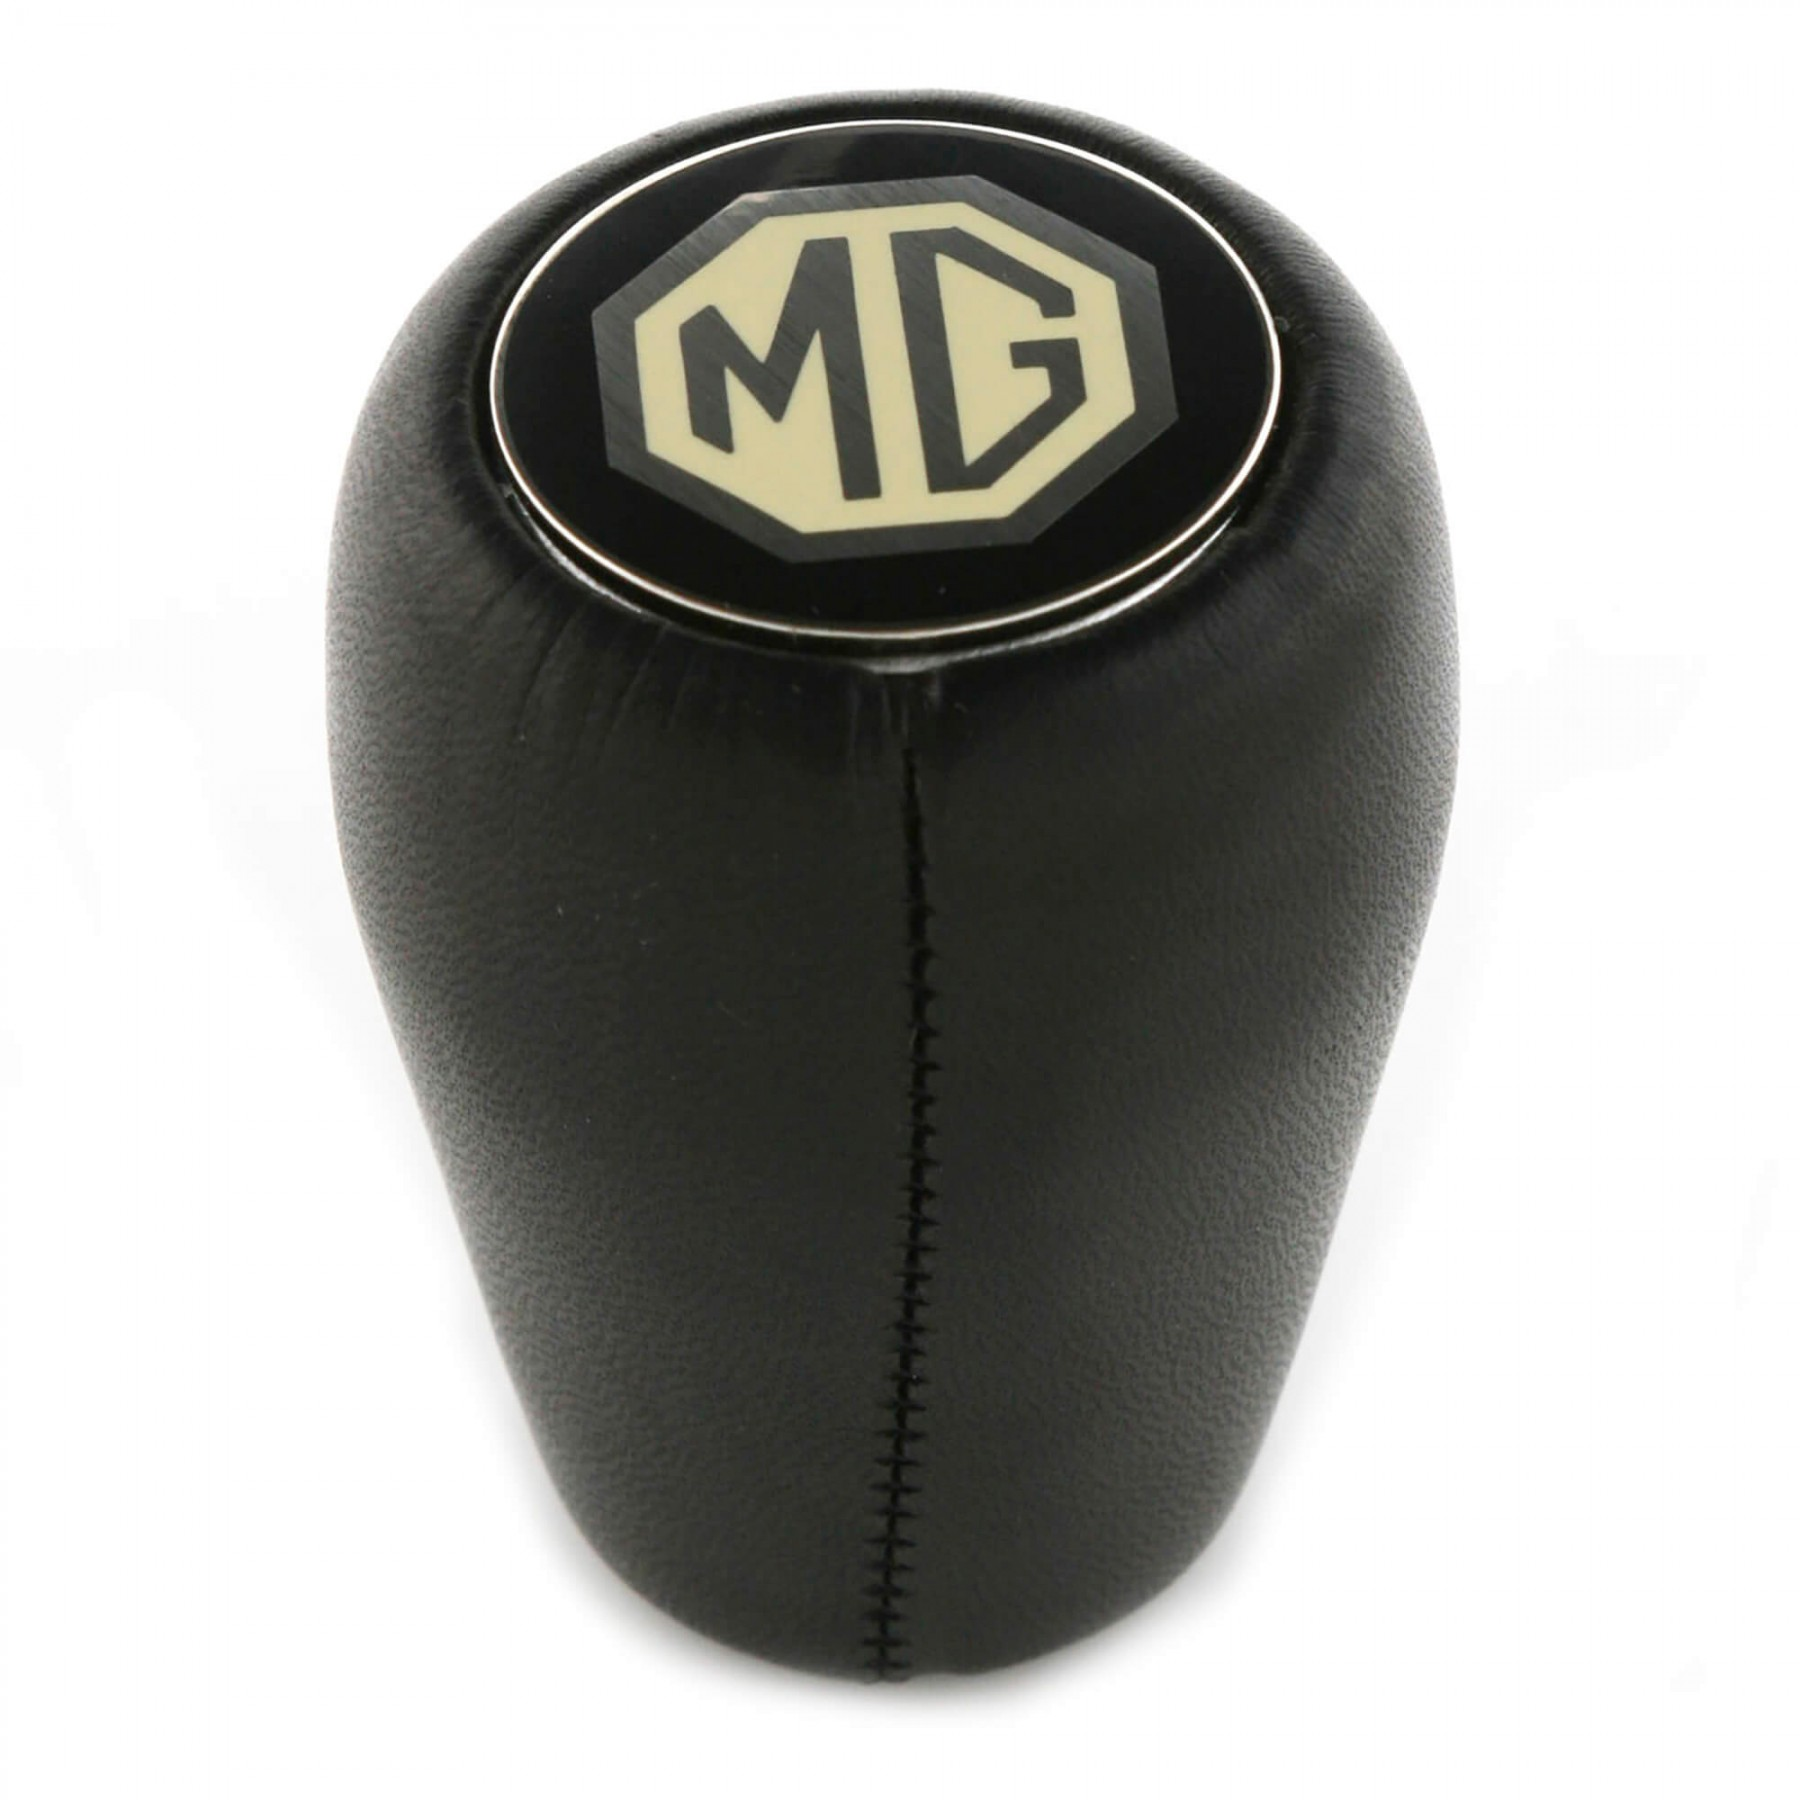 234 015 Mg Leather Shift Knob Black Moss Motors